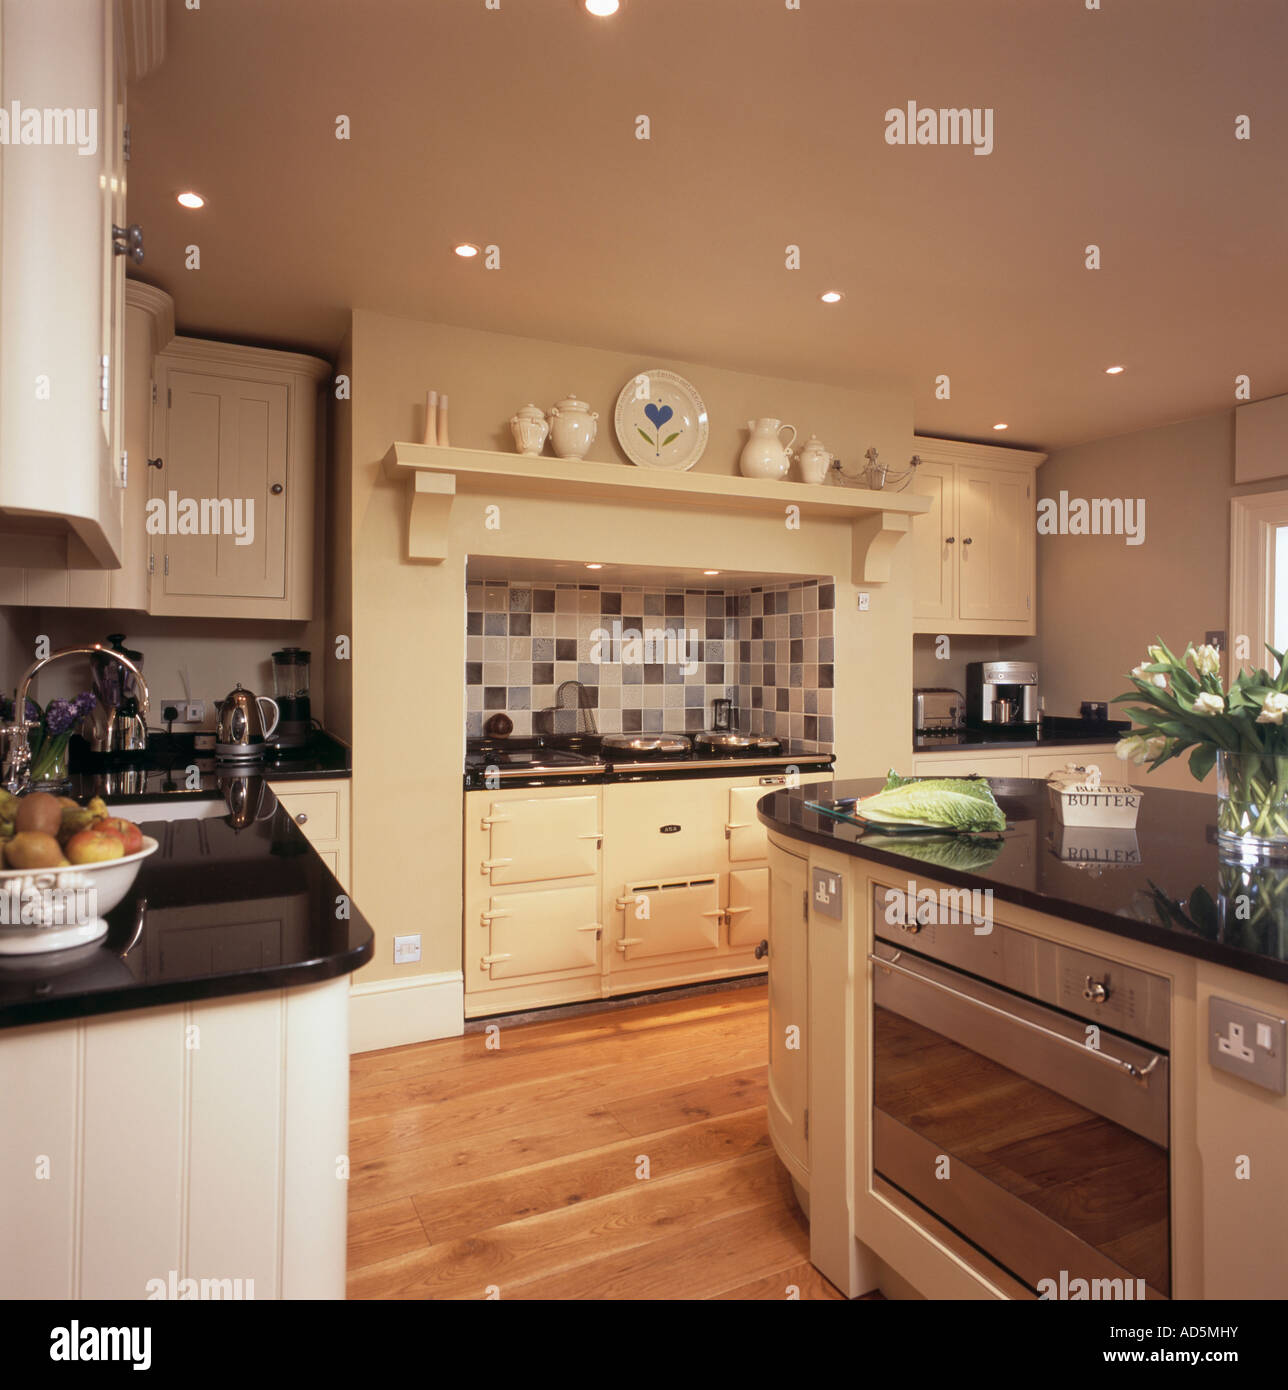 Cream Aga Oven In Country Kitchen With Built In Oven In ...